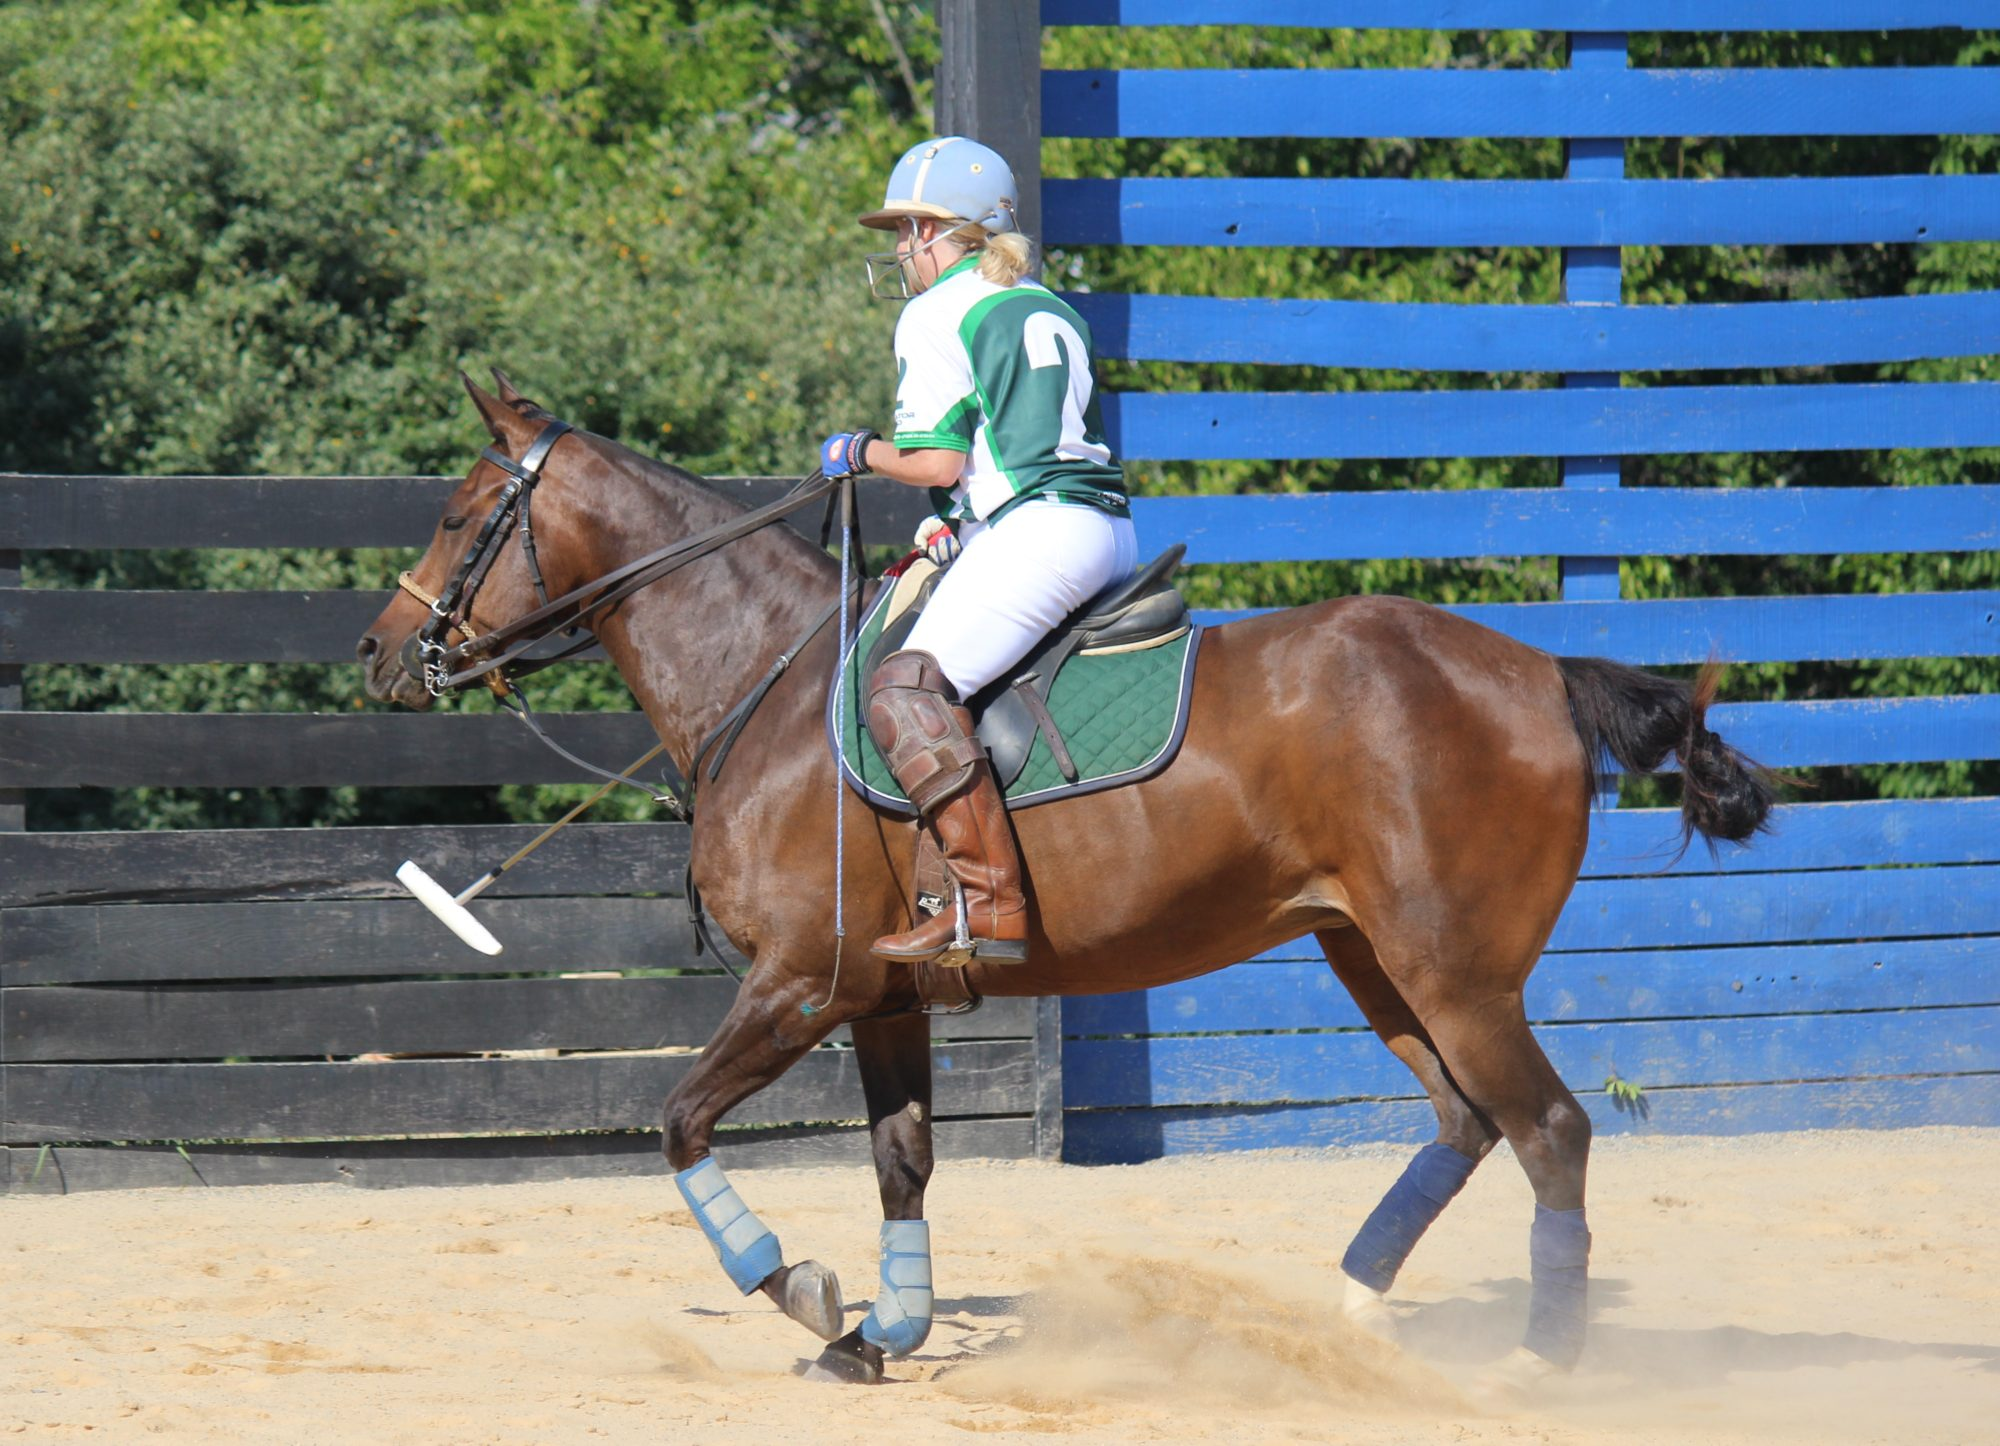 Chukker by Chukker